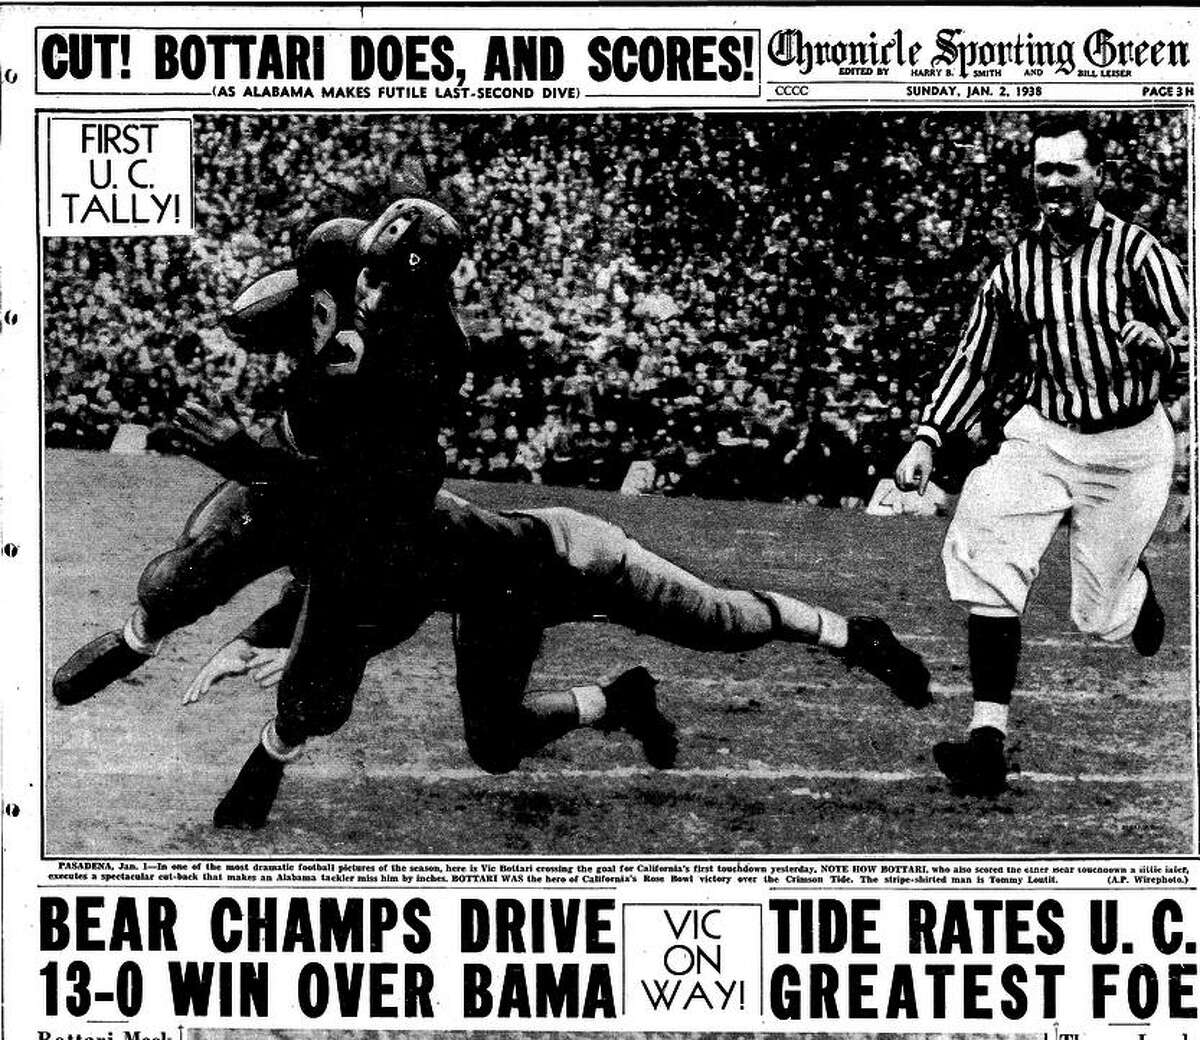 The inside page of The Chronicle on Jan. 2, 1938, reports Cal's historic 13-0 win over Alabama in the Rose Bowl.